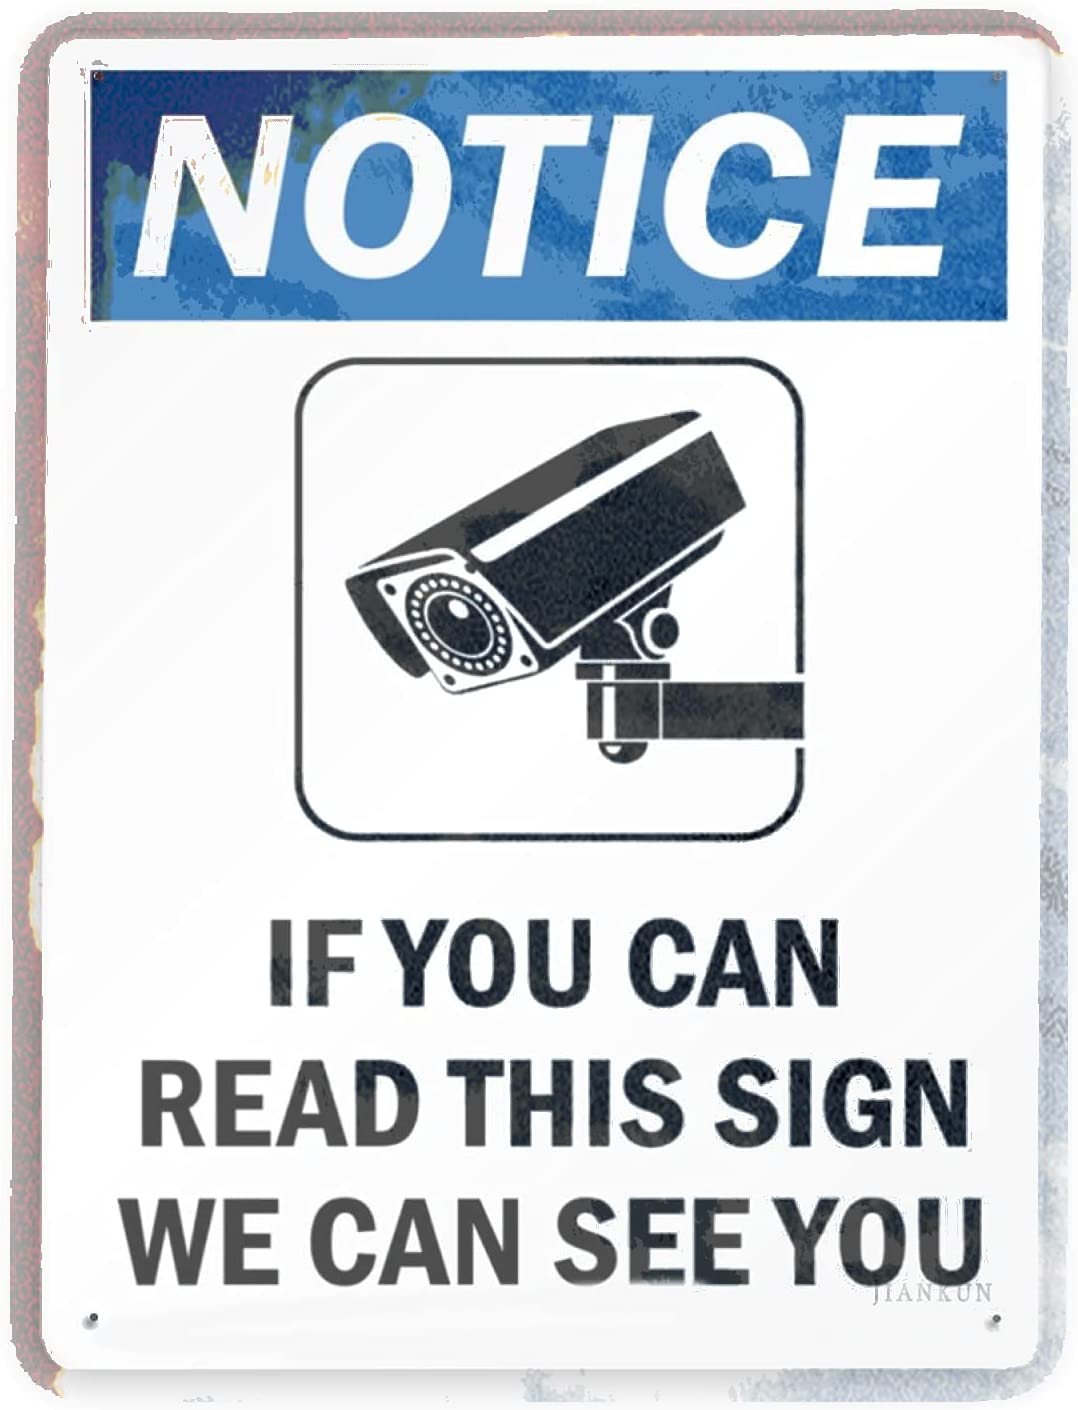 Man Cave Decor 2 Colorado Springs Mall Pieces Warning notice Classic You If Read Can Sign